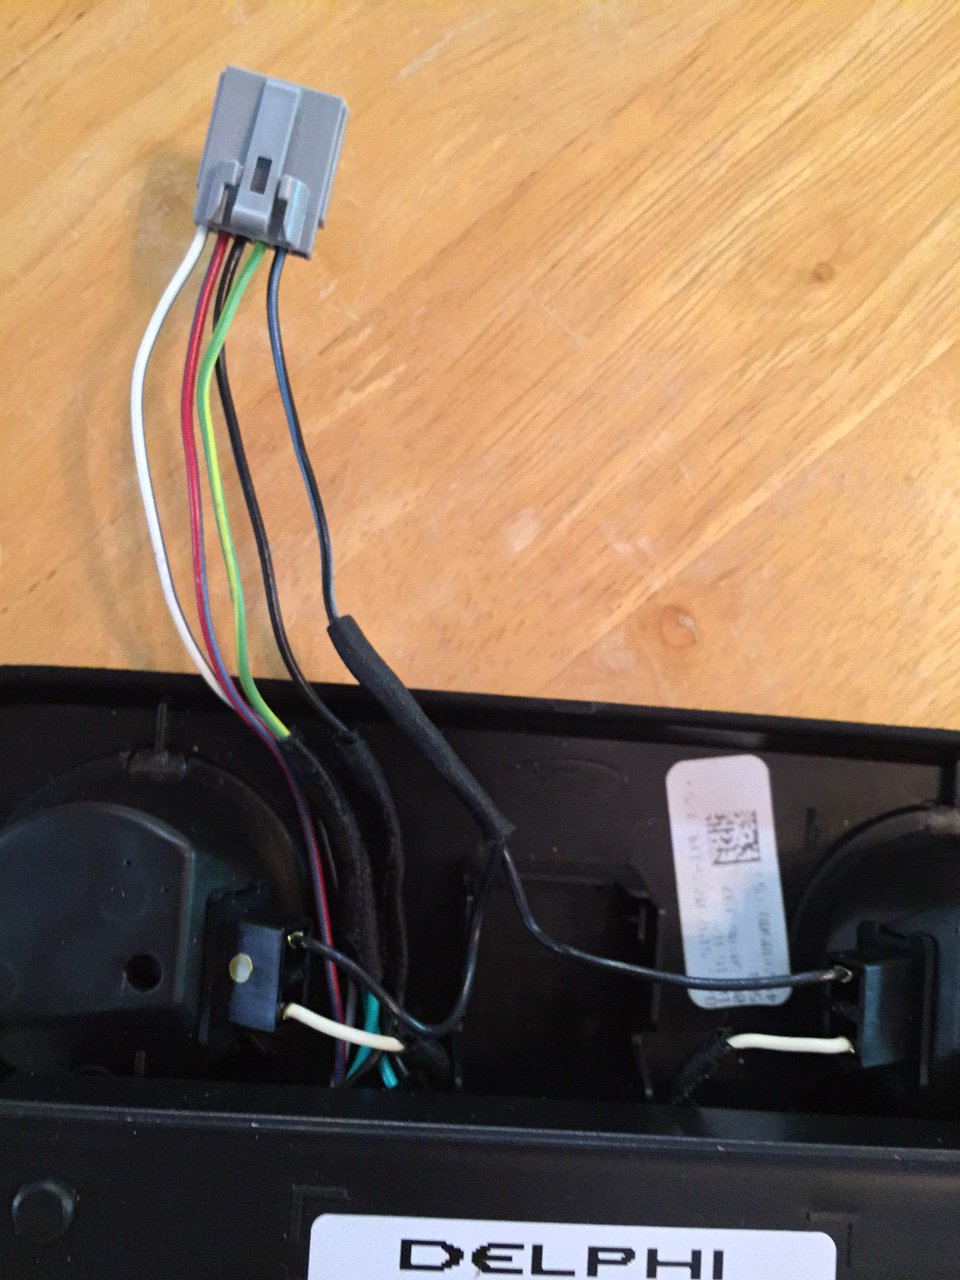 Home Link Visor Wiring Schema Diagrams Electricity In House Map Light For Homelink Positive Negative Wires Pic Key